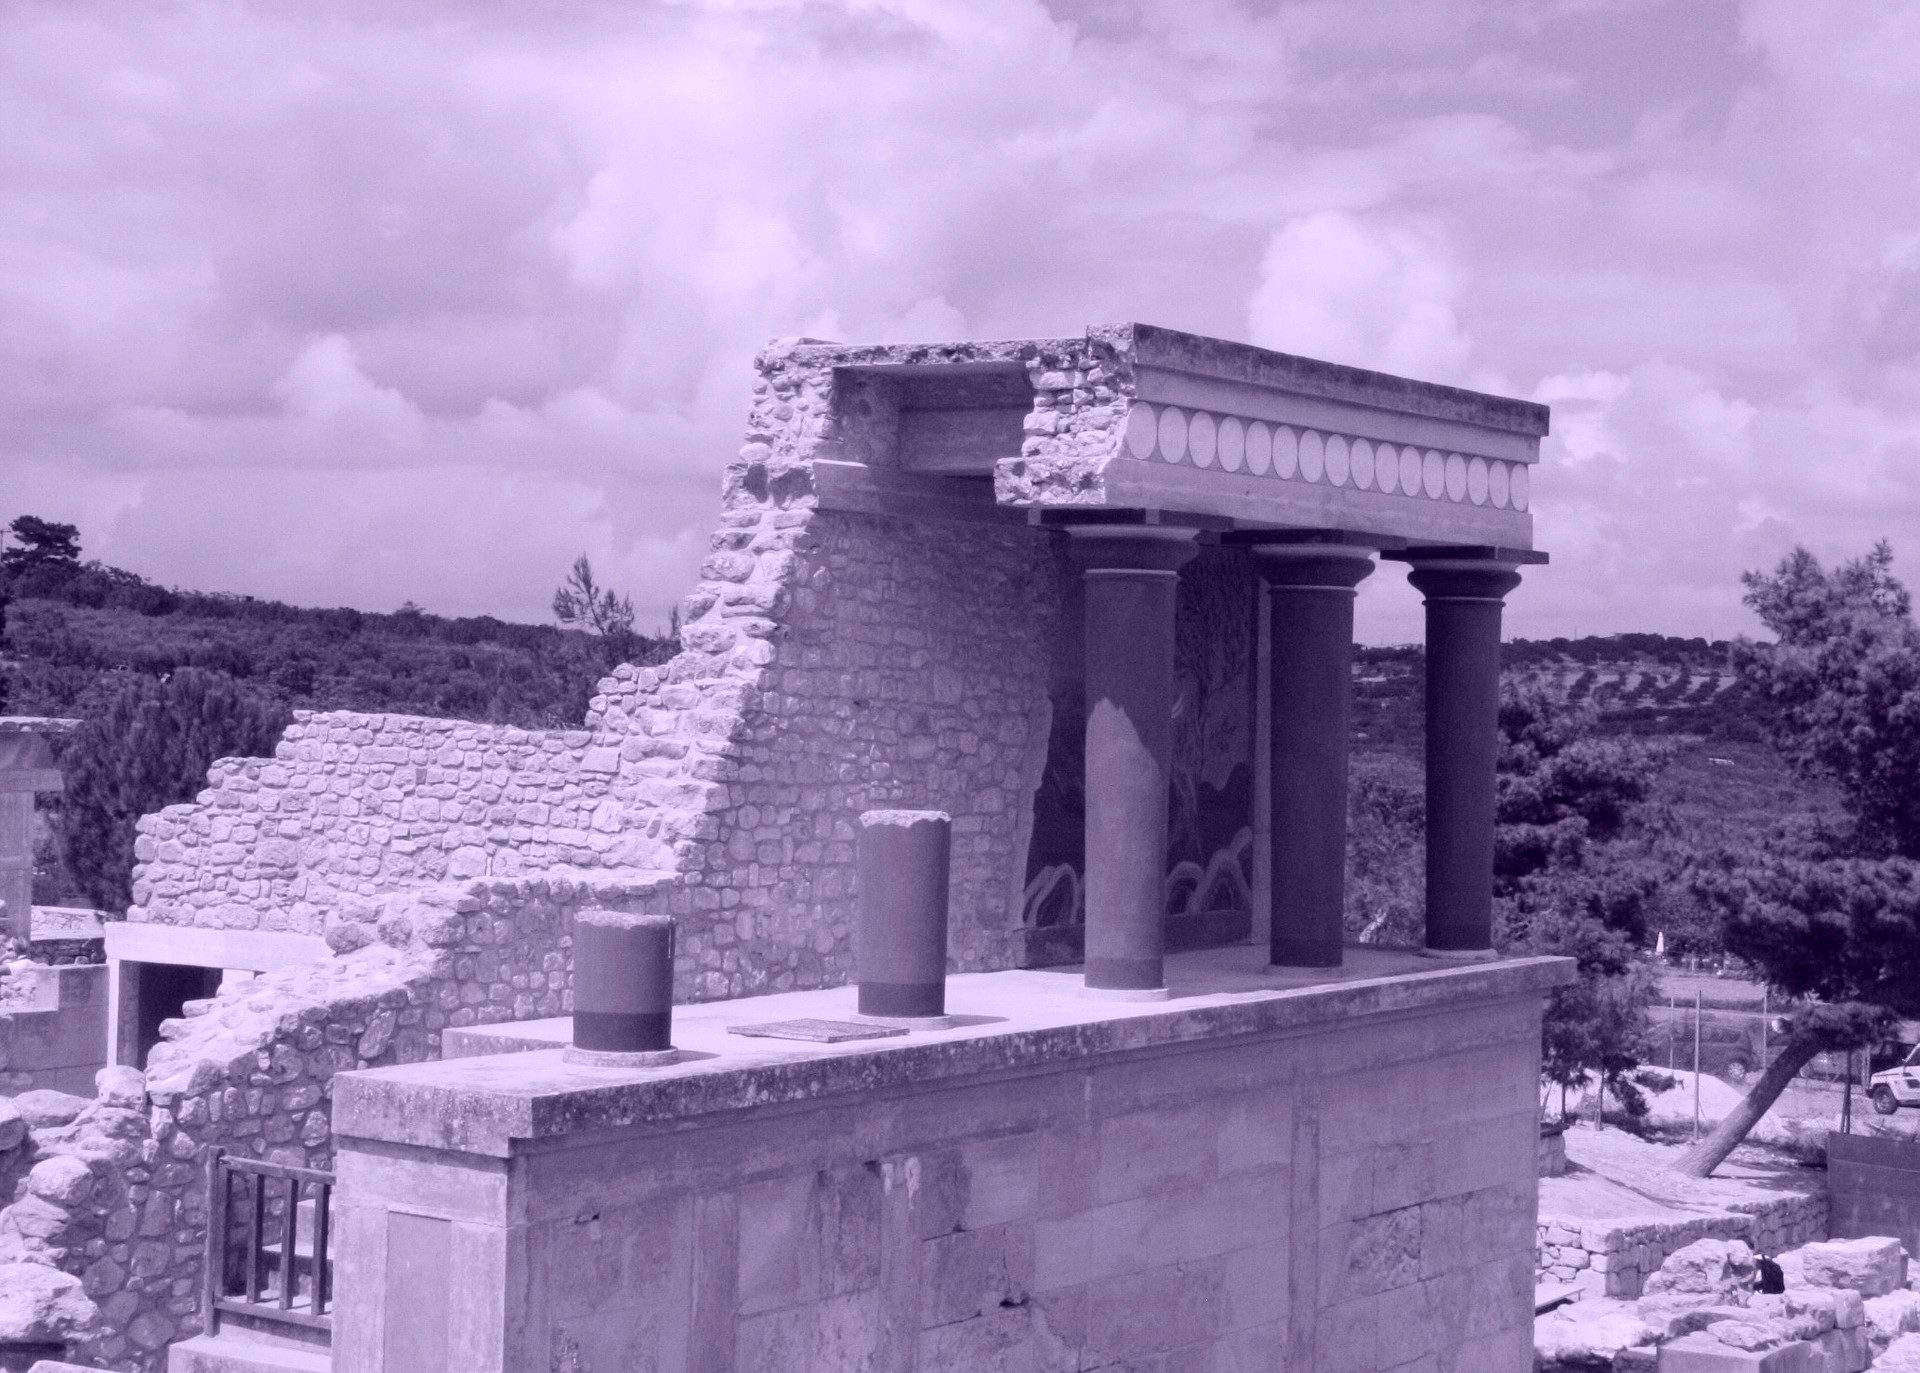 Knossos, Crete, Greece. The most ancient of European civilizations was the Minoan culture which was founded and developed on the Greek island of Crete.